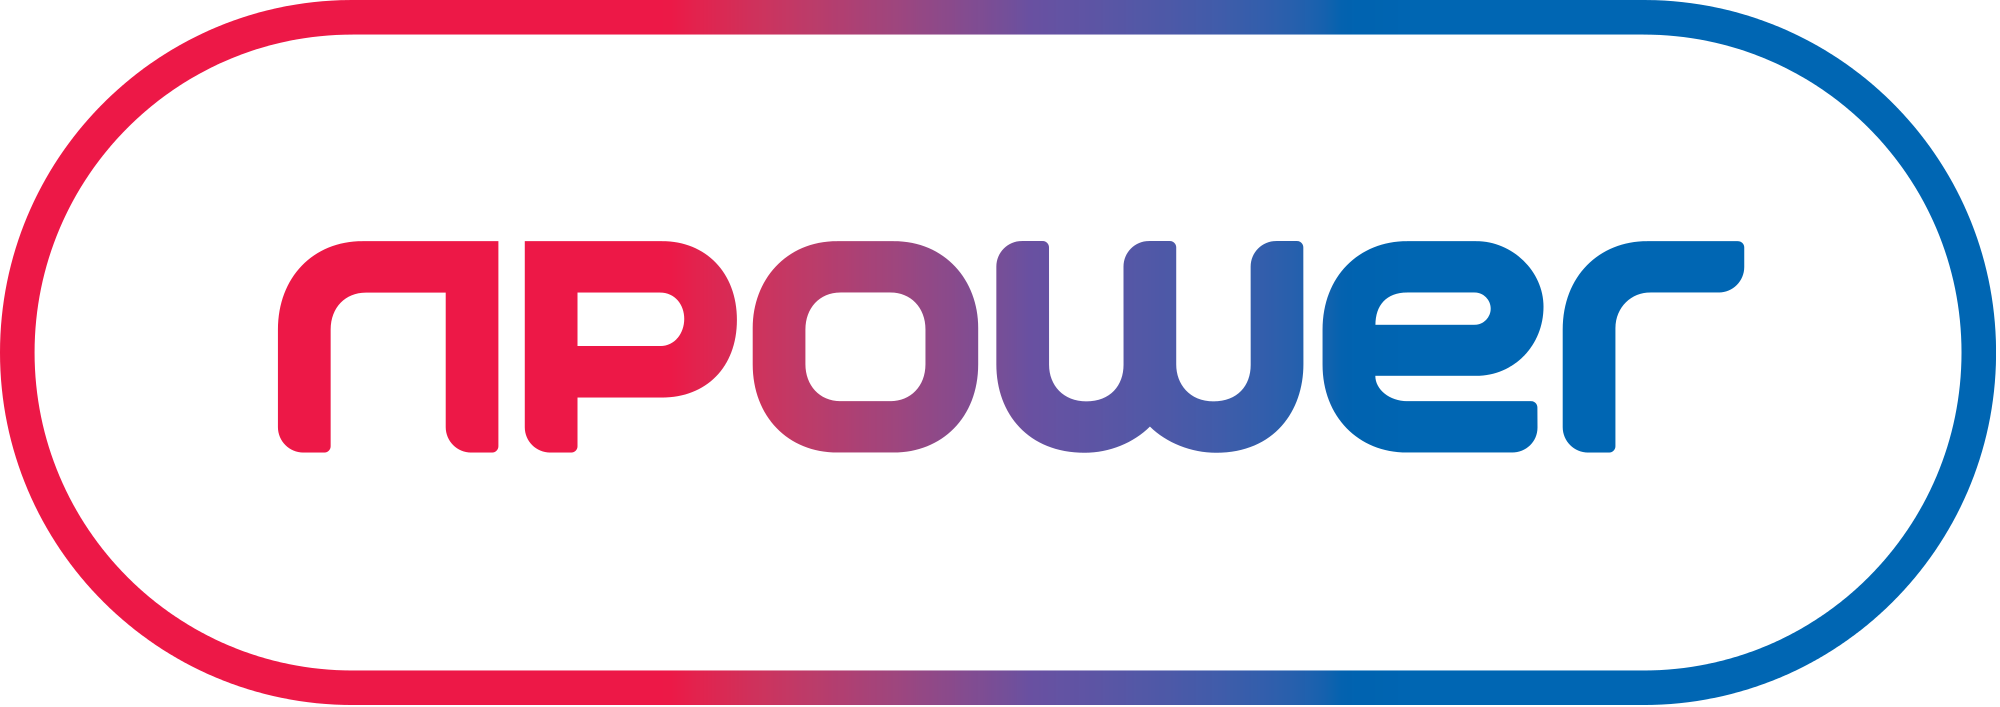 npower lozenge shaped  logo in red and blue for explainer video page